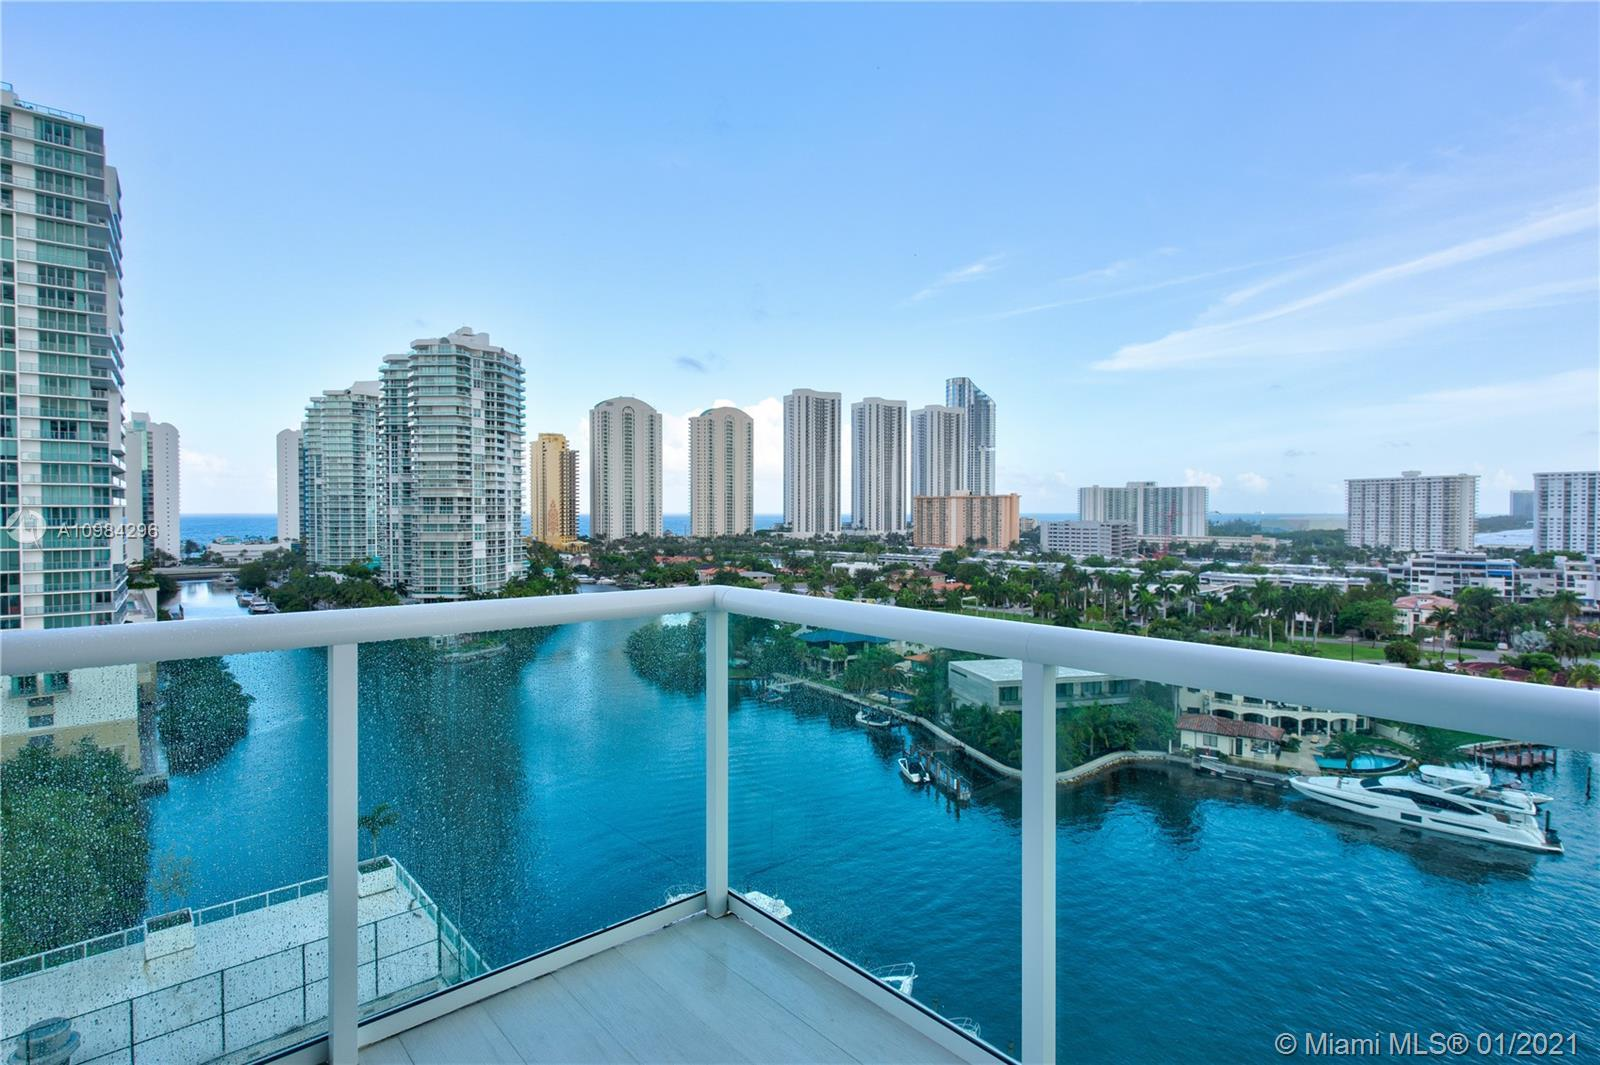 AMAZING OPPORTUNITY FOR A CORNER UNIT AT 400 SUNNY ISLES! 3 Bedrooms, 3 bathrooms, with STUNNING PAN